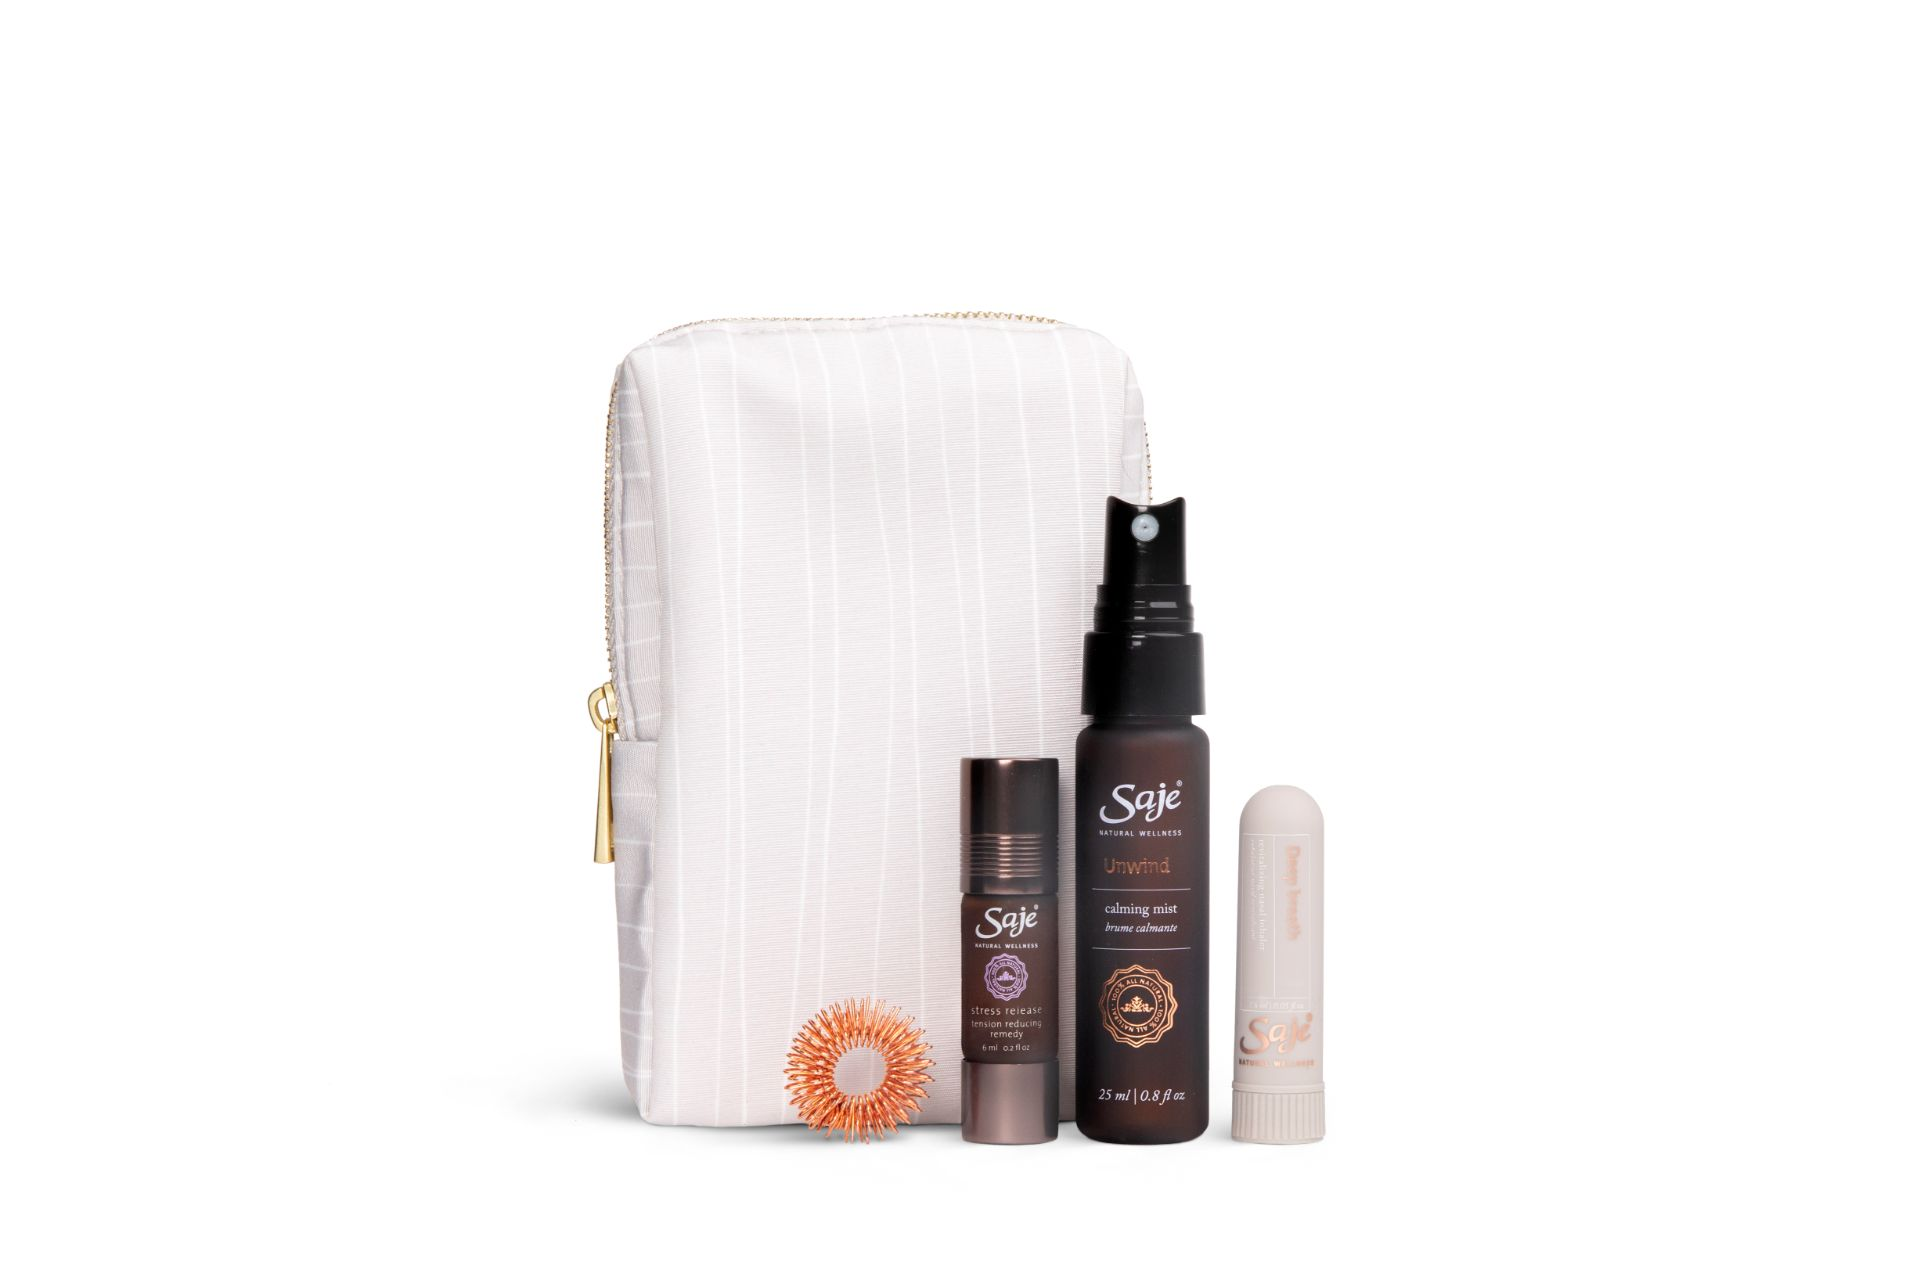 four essential oil and relaxation products with a white carrying case